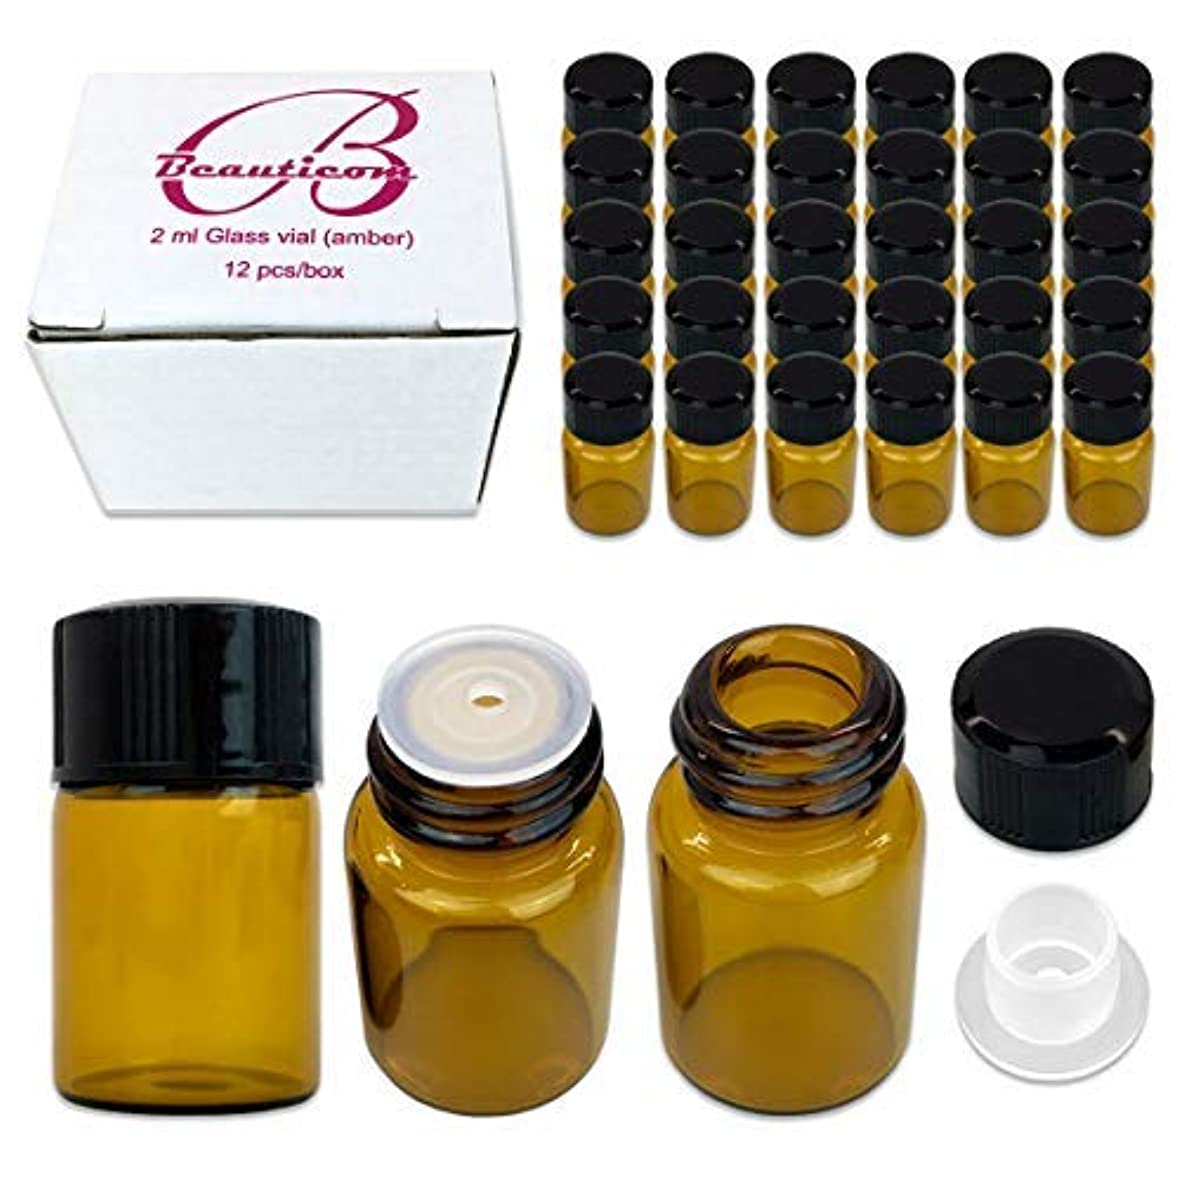 グリル取得する翻訳する48 Packs Beauticom 2ML Amber Glass Vial for Essential Oils, Aromatherapy, Fragrance, Serums, Spritzes, with Orifice...